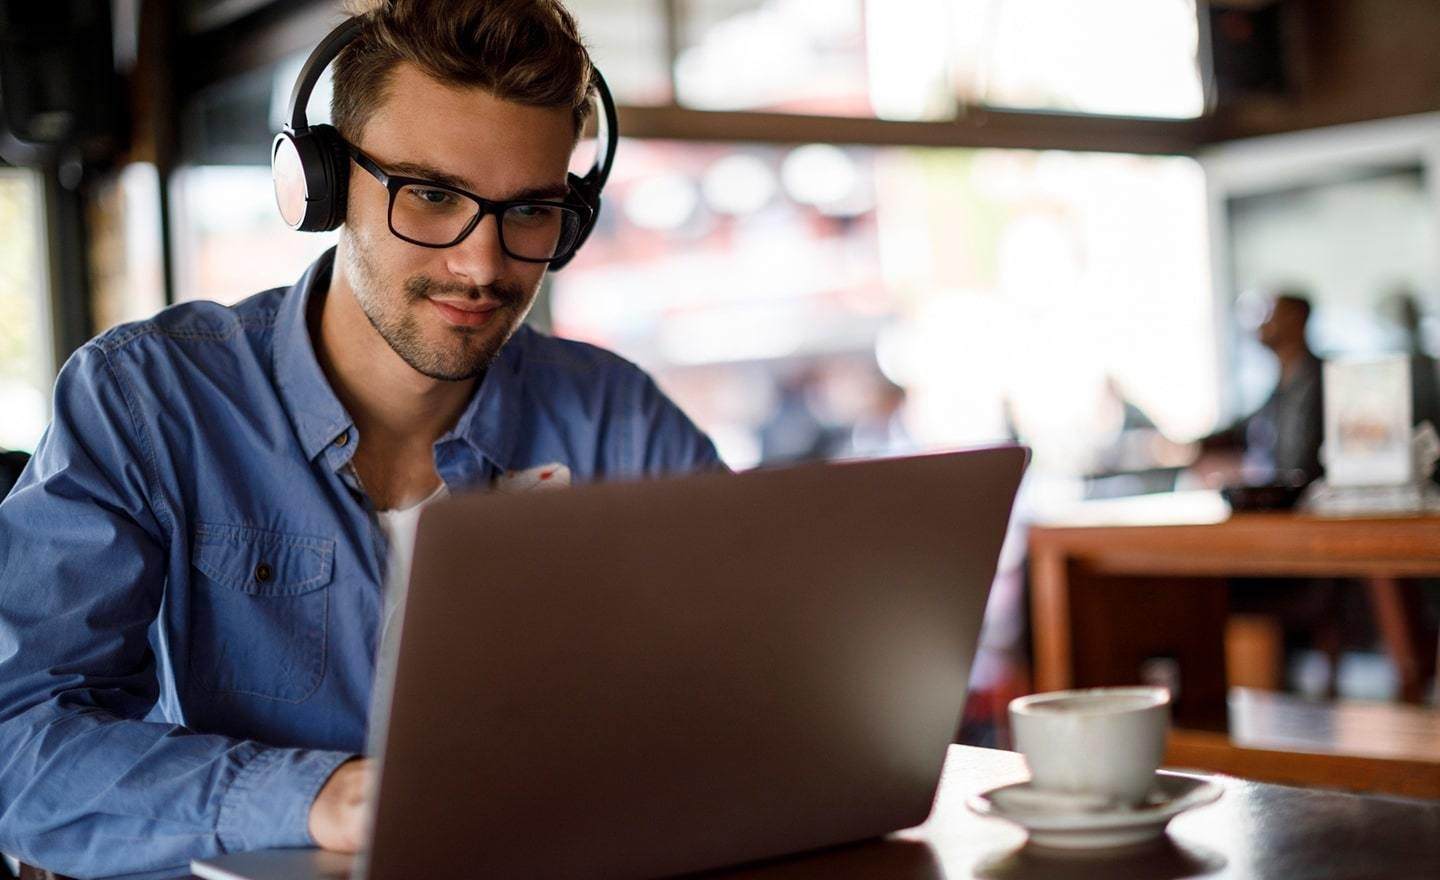 Man working in a coffee shop with headphones